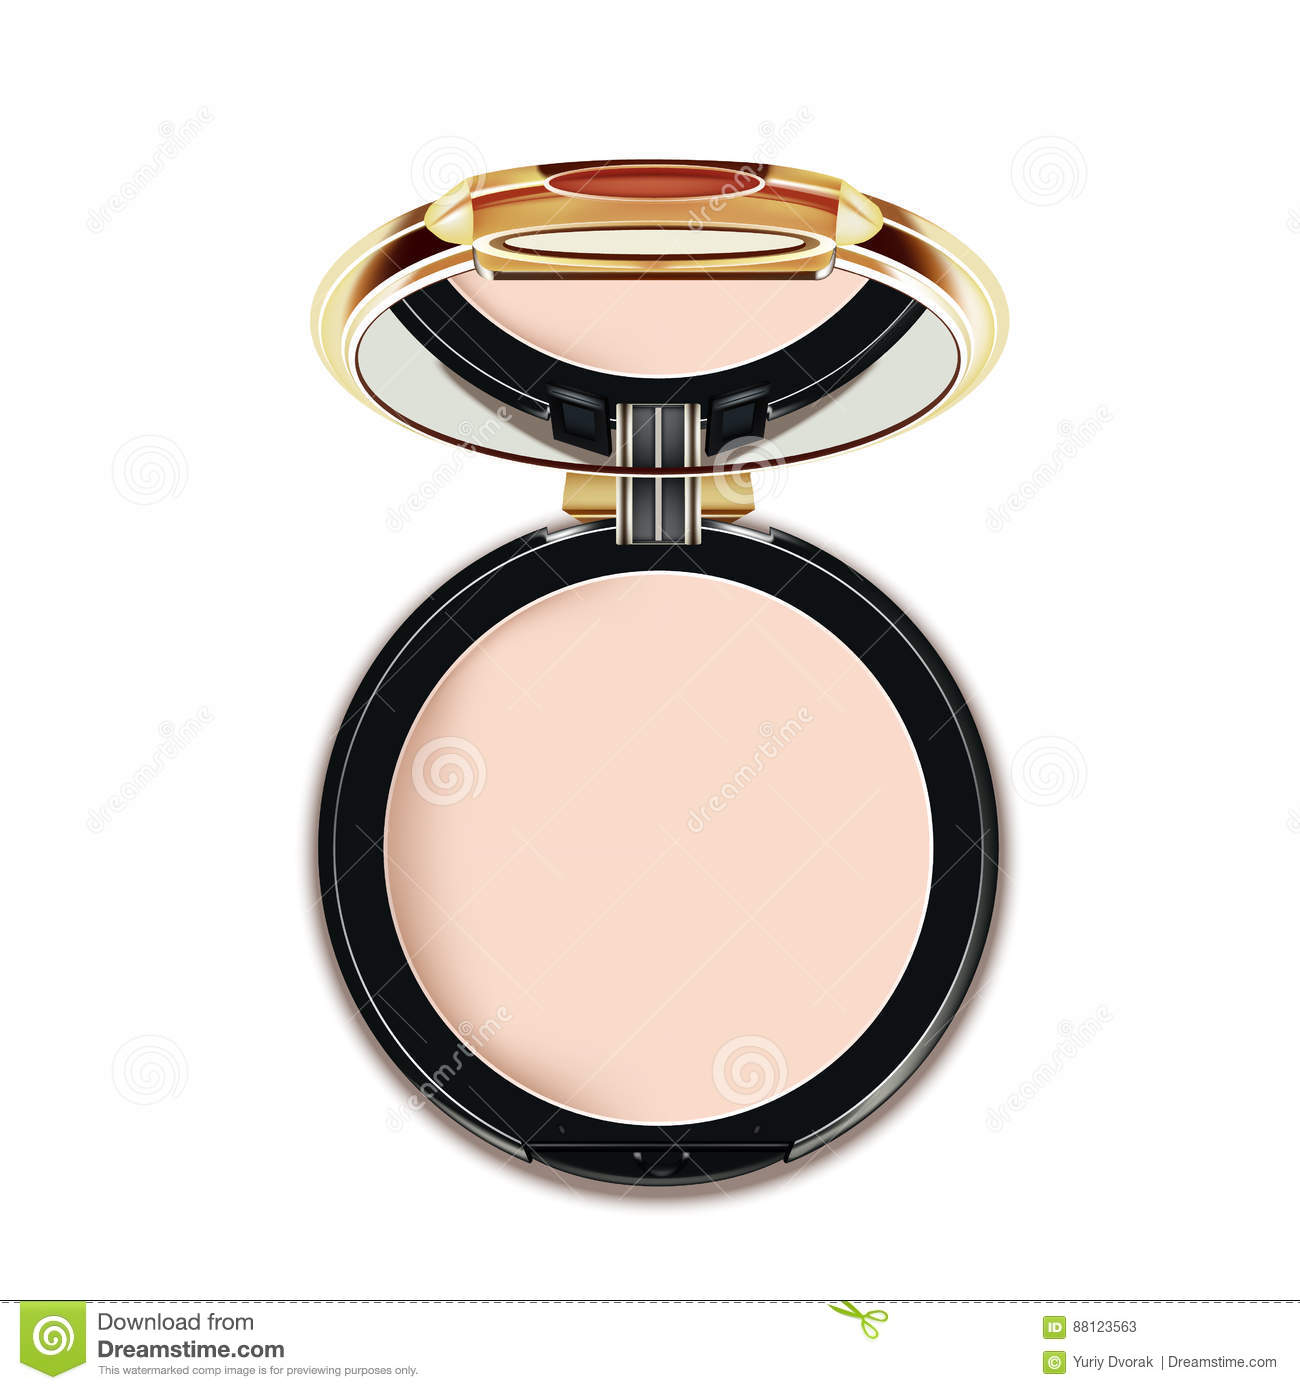 Face Cosmetic Makeup Powder in Black and gold Case with Mirror Top View on White Background. Vector.